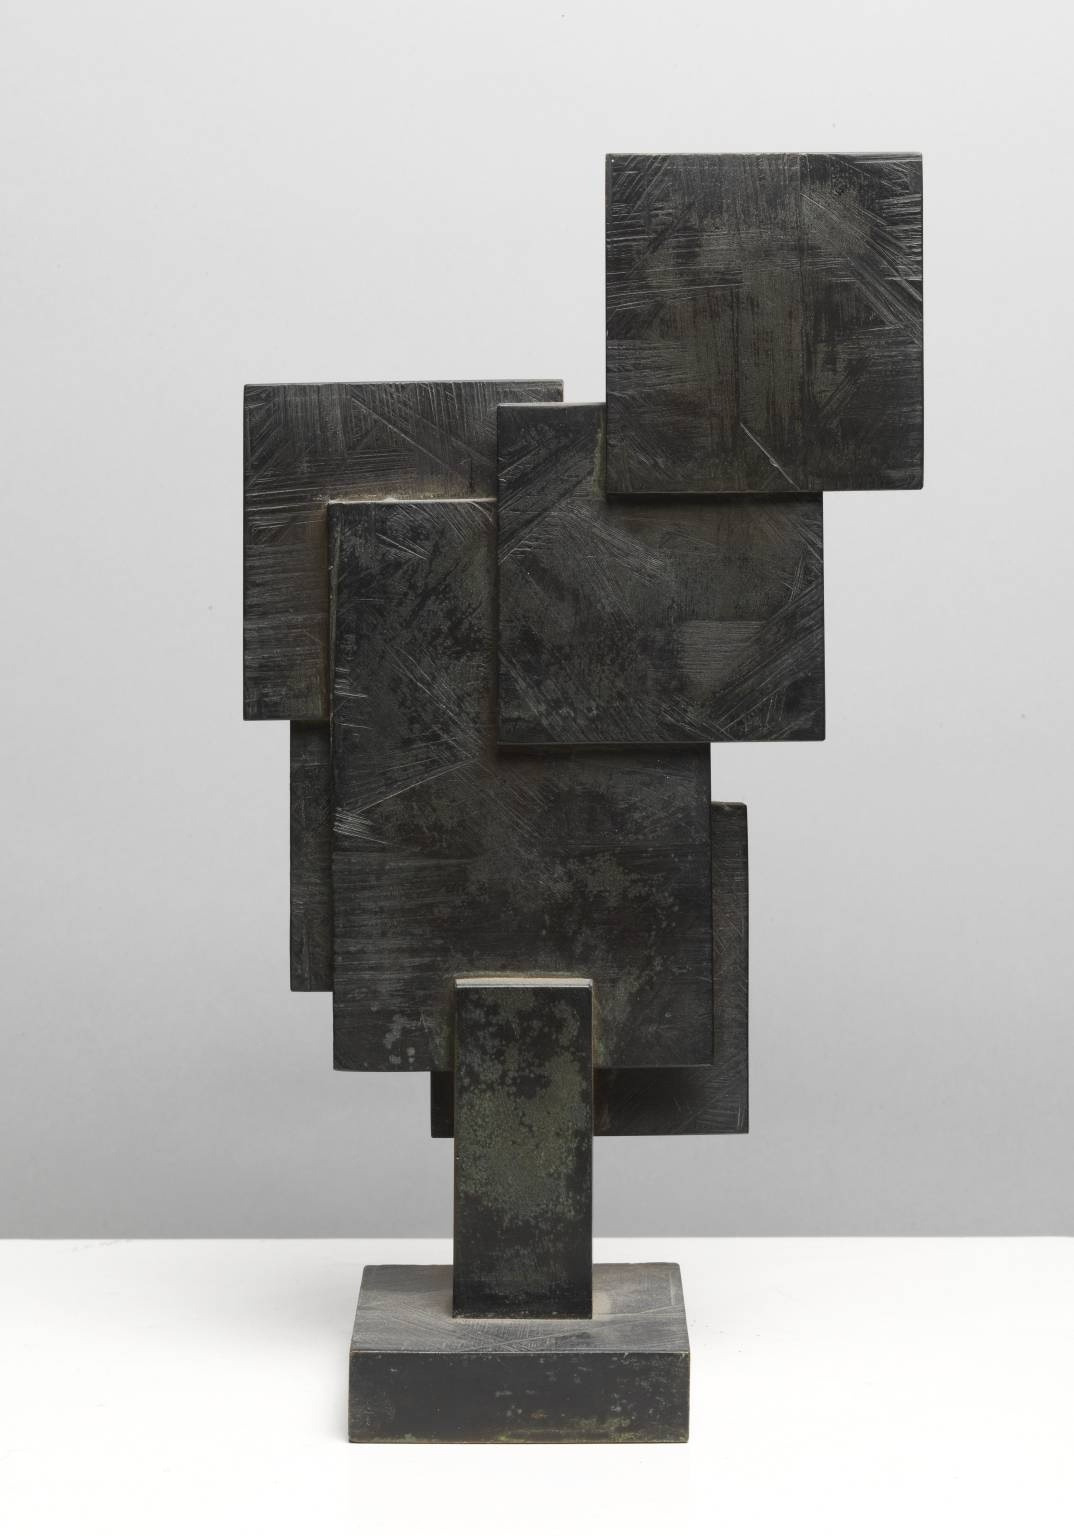 sofiaiz:  Barbara Hepworth, Square Forms, 1962